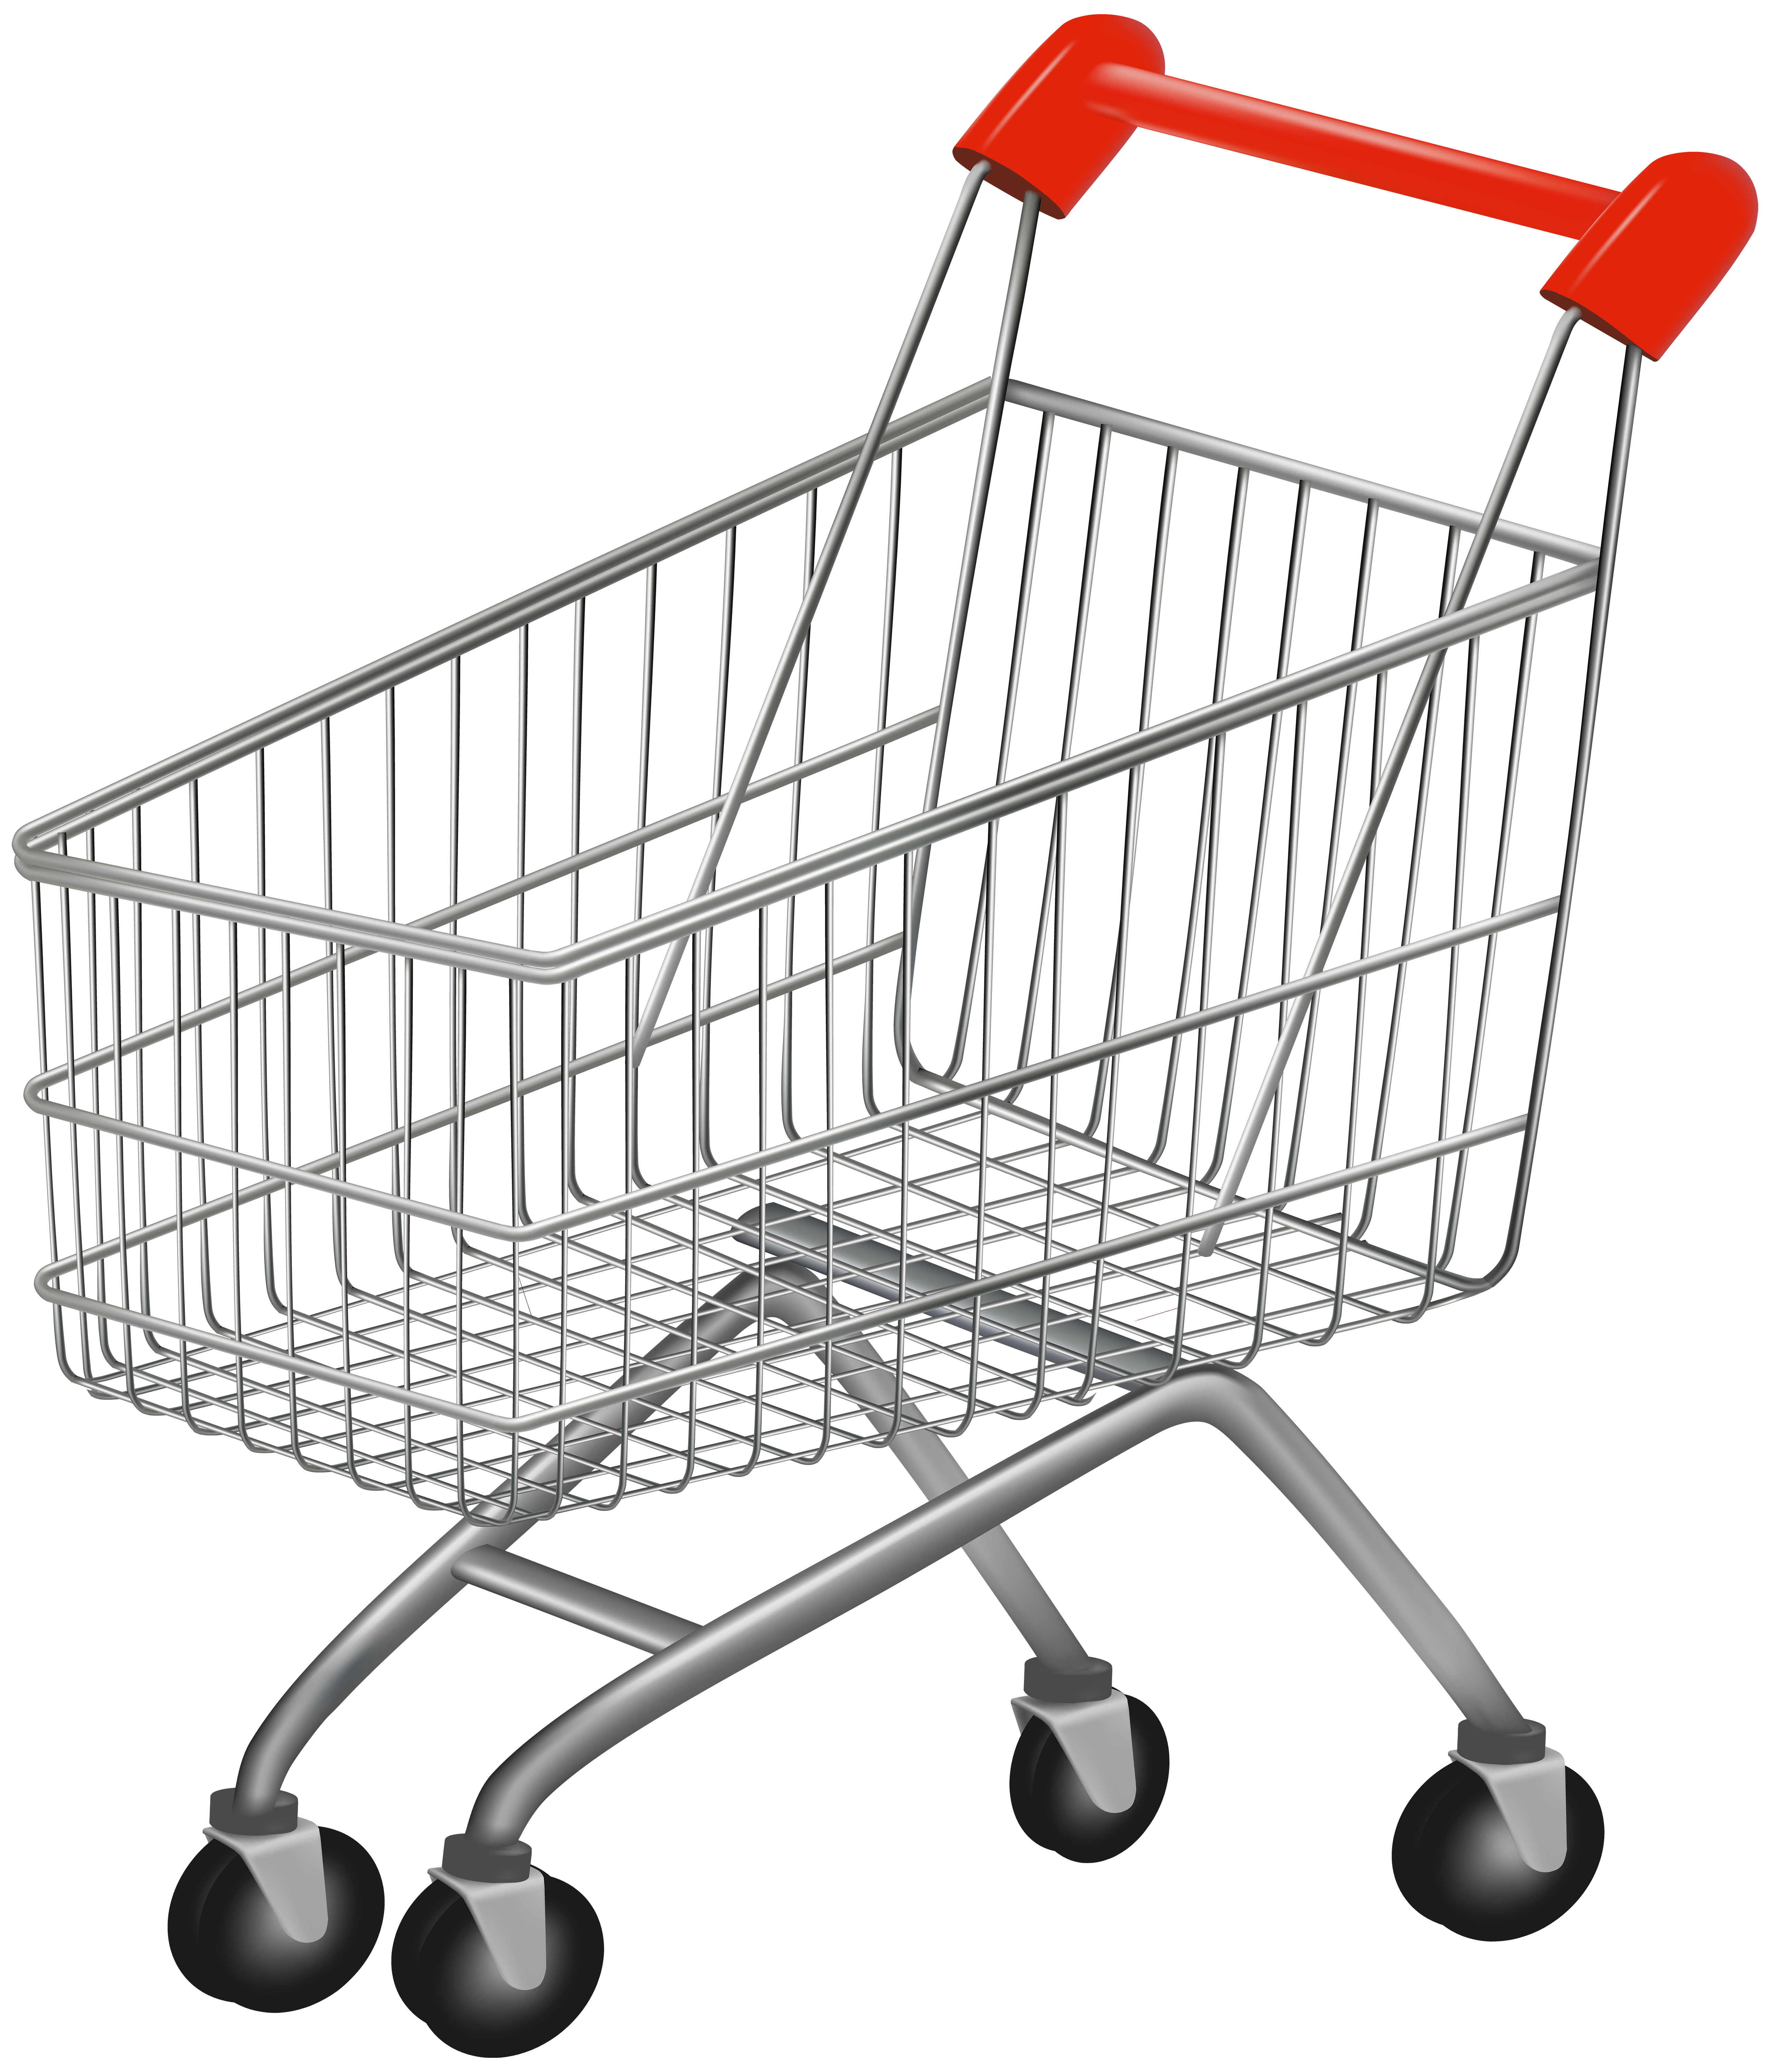 Free shopping cart clipart picture royalty free download Shopping Cart PNG Clip Art Image | Gallery Yopriceville ... picture royalty free download